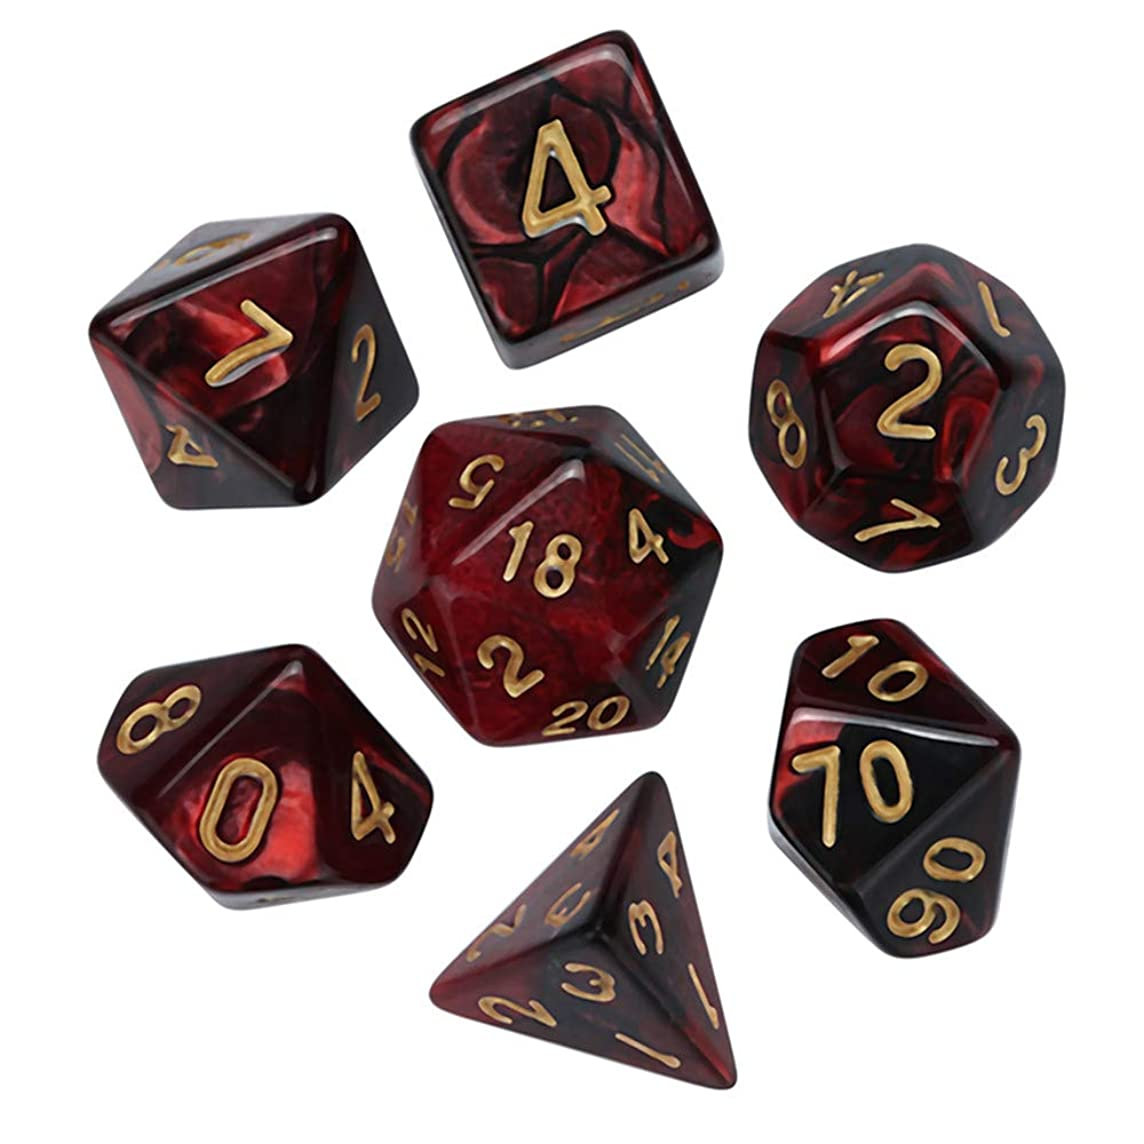 lotus.flower Game Dice,7Pcs Durable Resin Polyhedral Dice Set- Fun Role Playing Gaming Props Dungeons Dragons RPG MTG Table Games